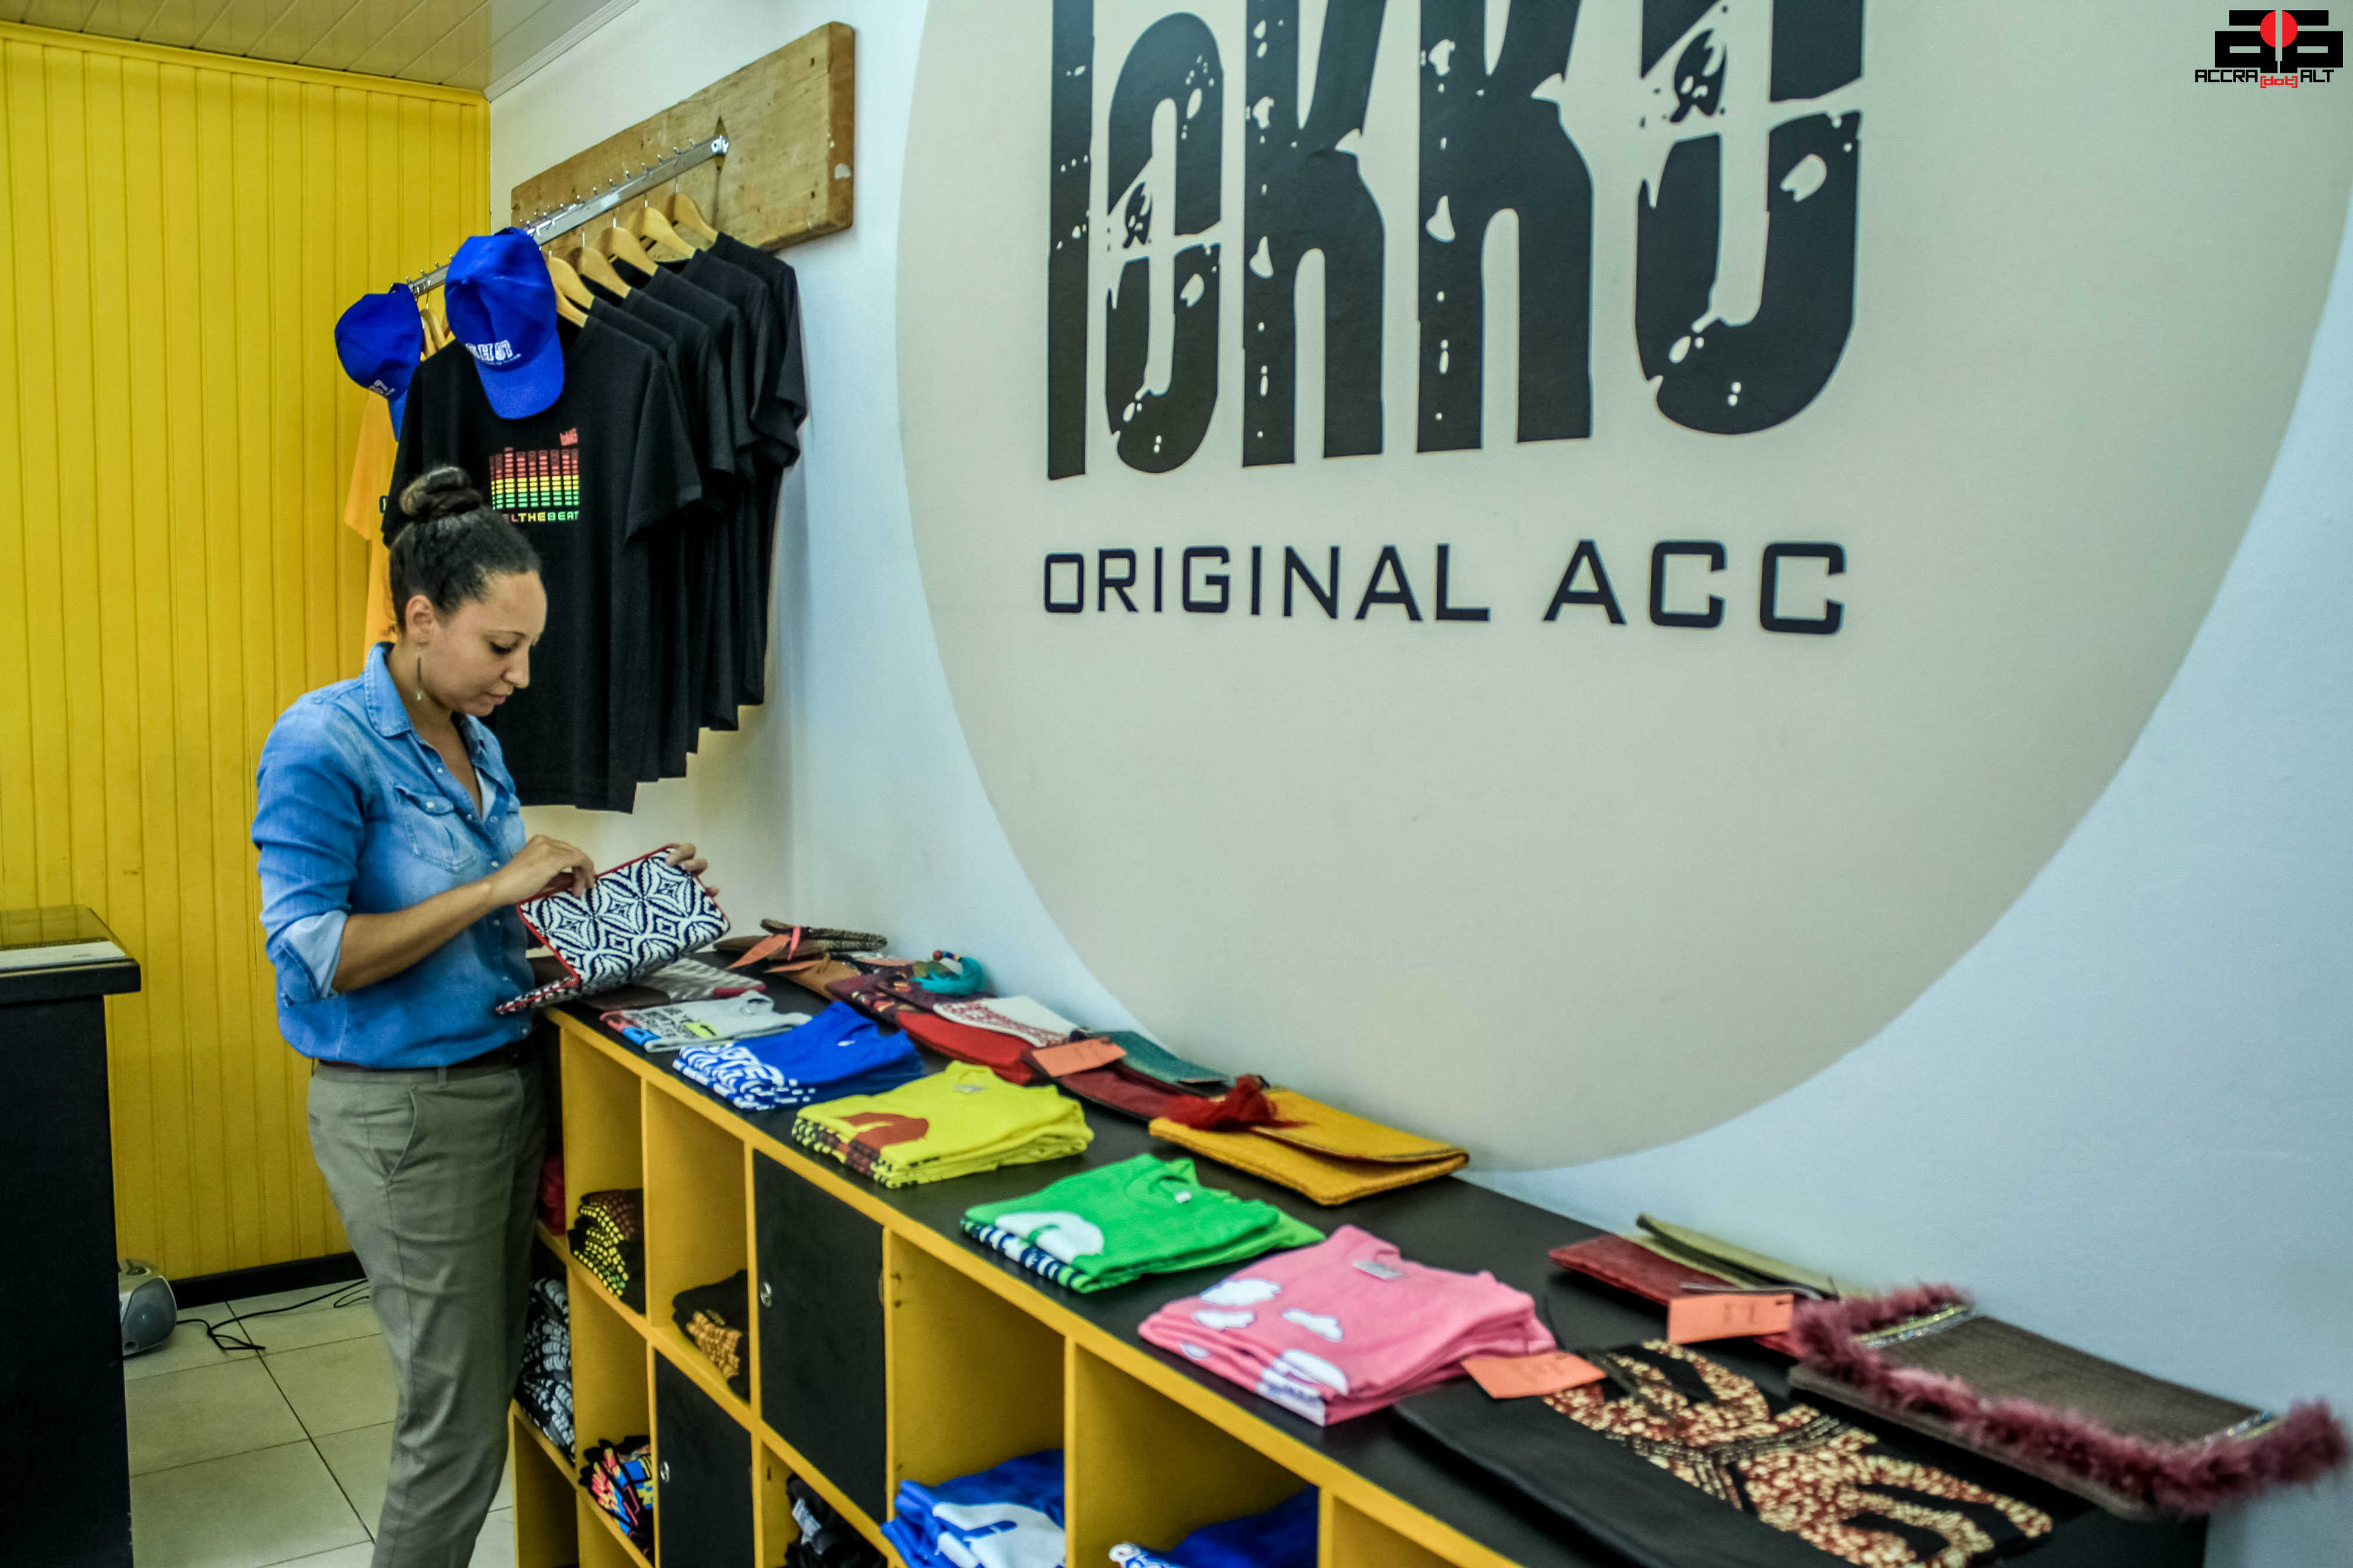 Inside the Lokko store with Stefania